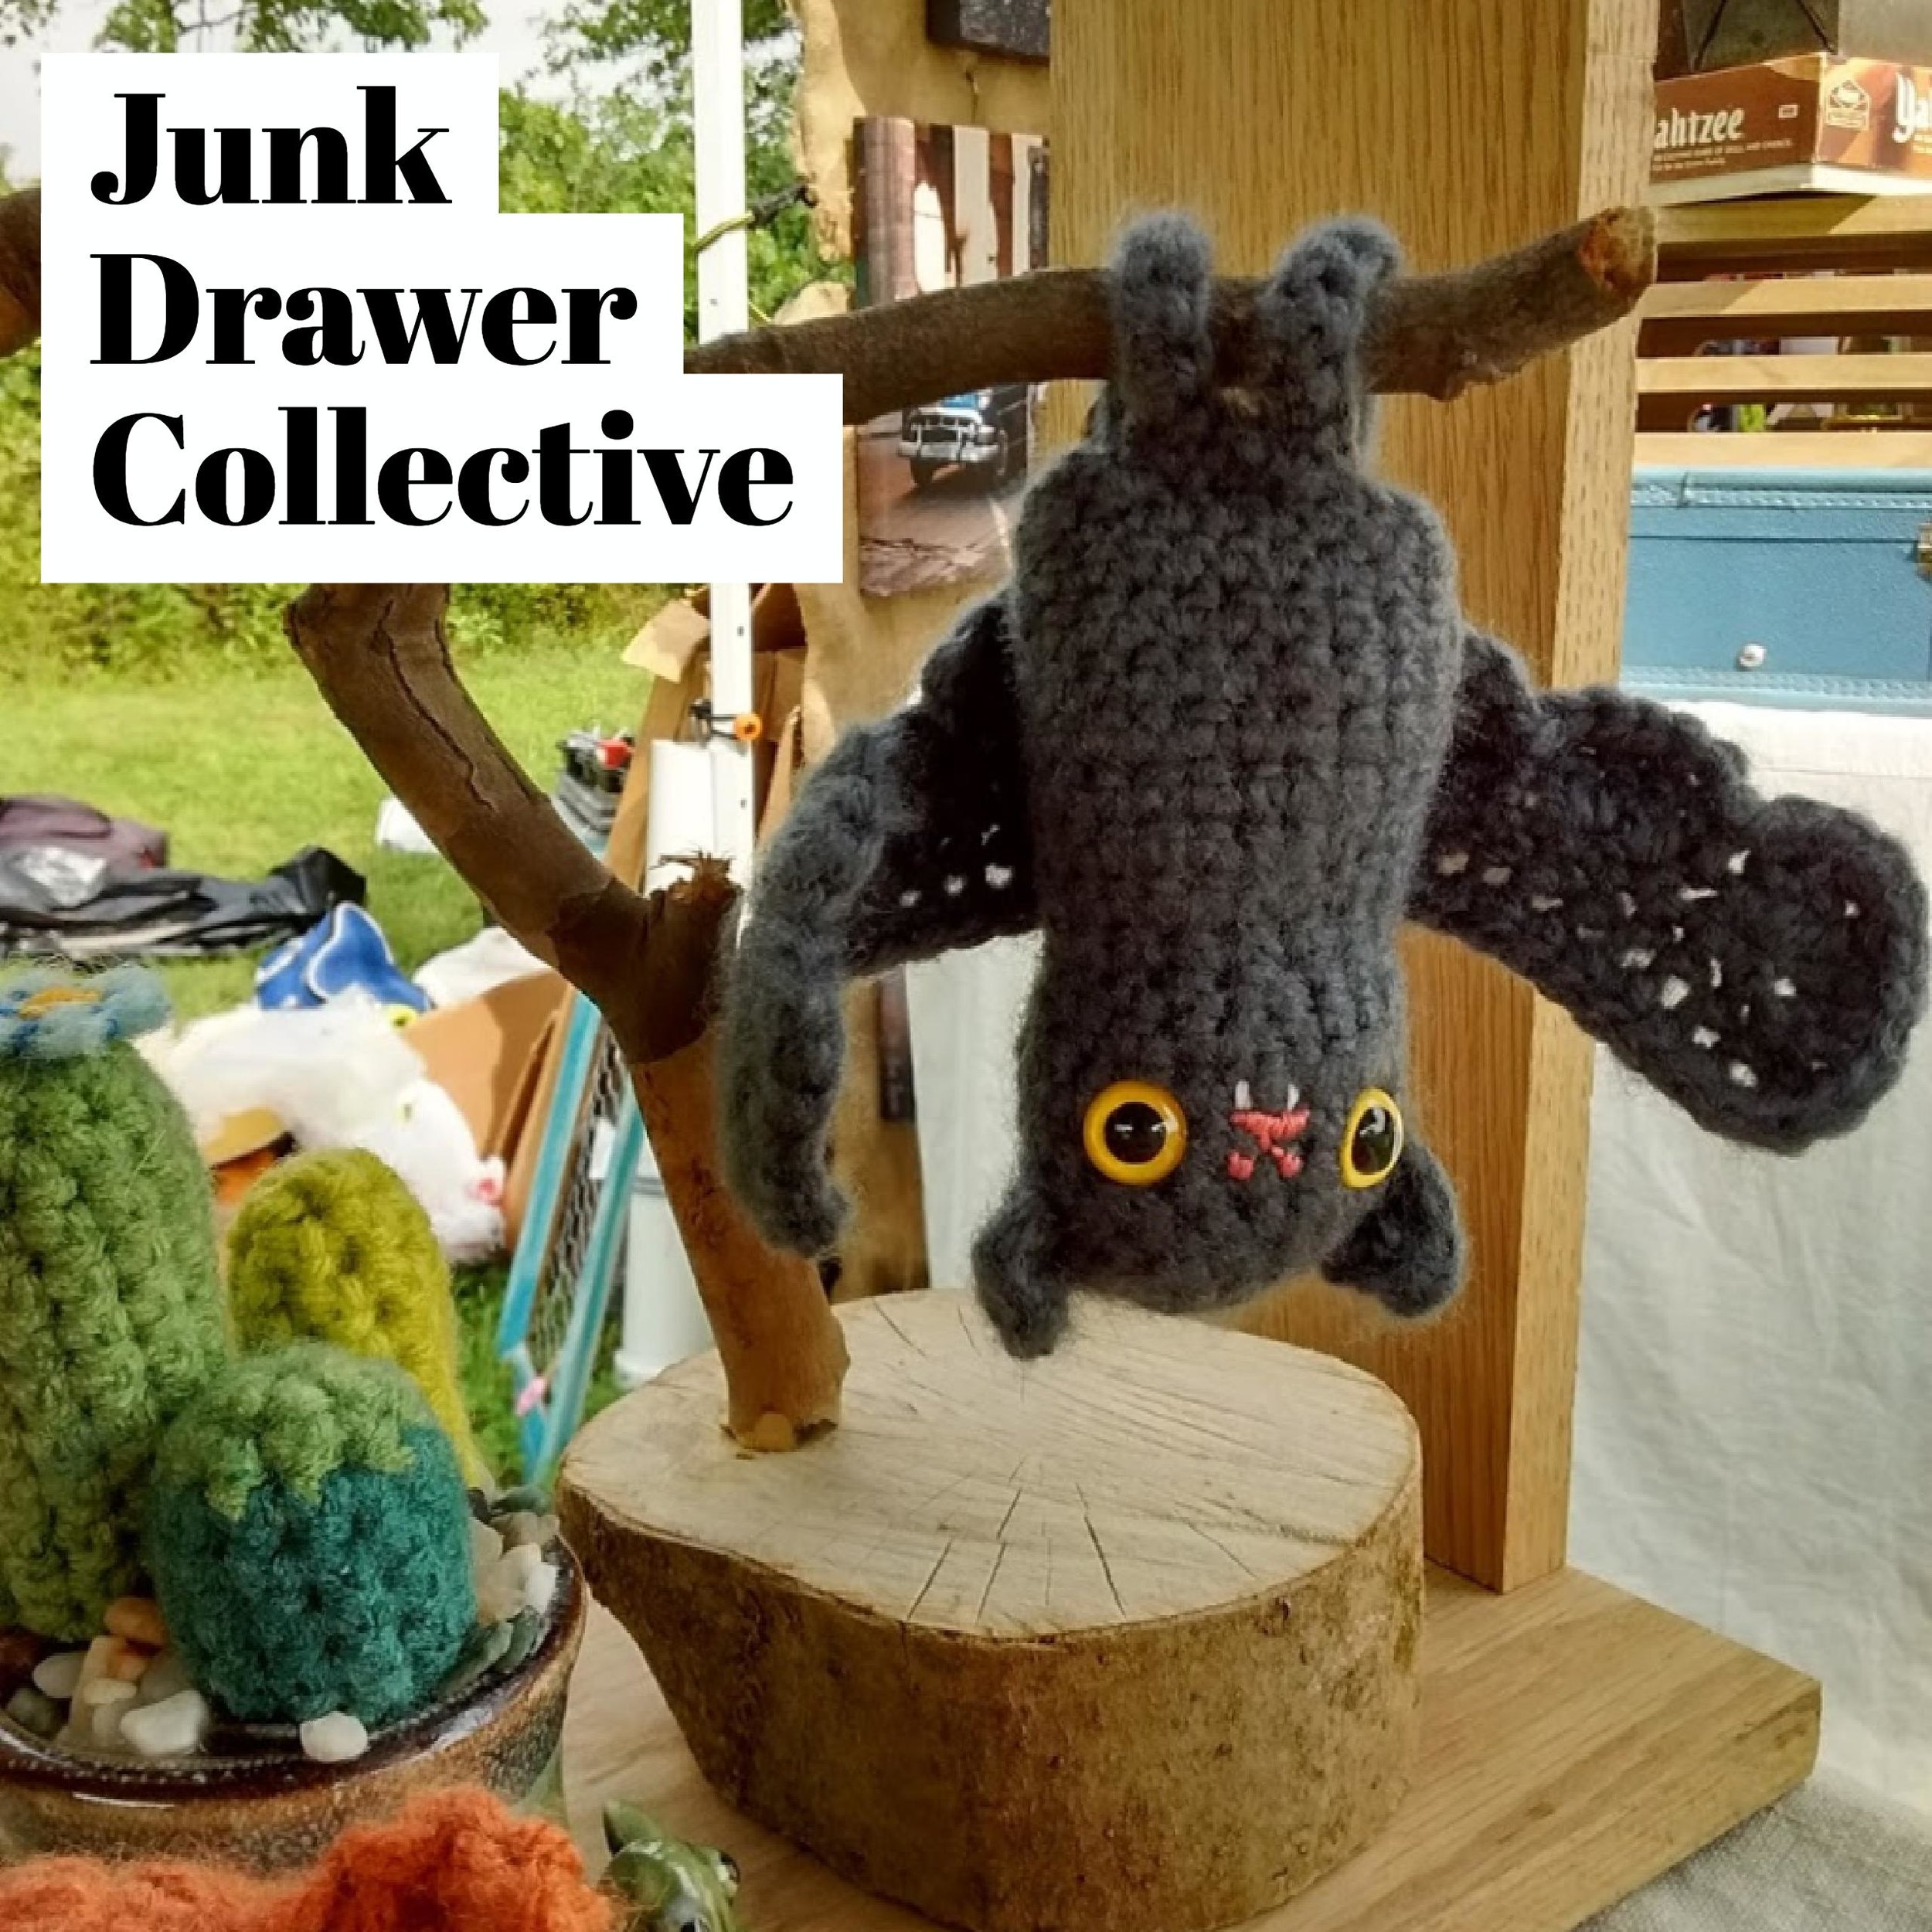 Junk Drawer Collective